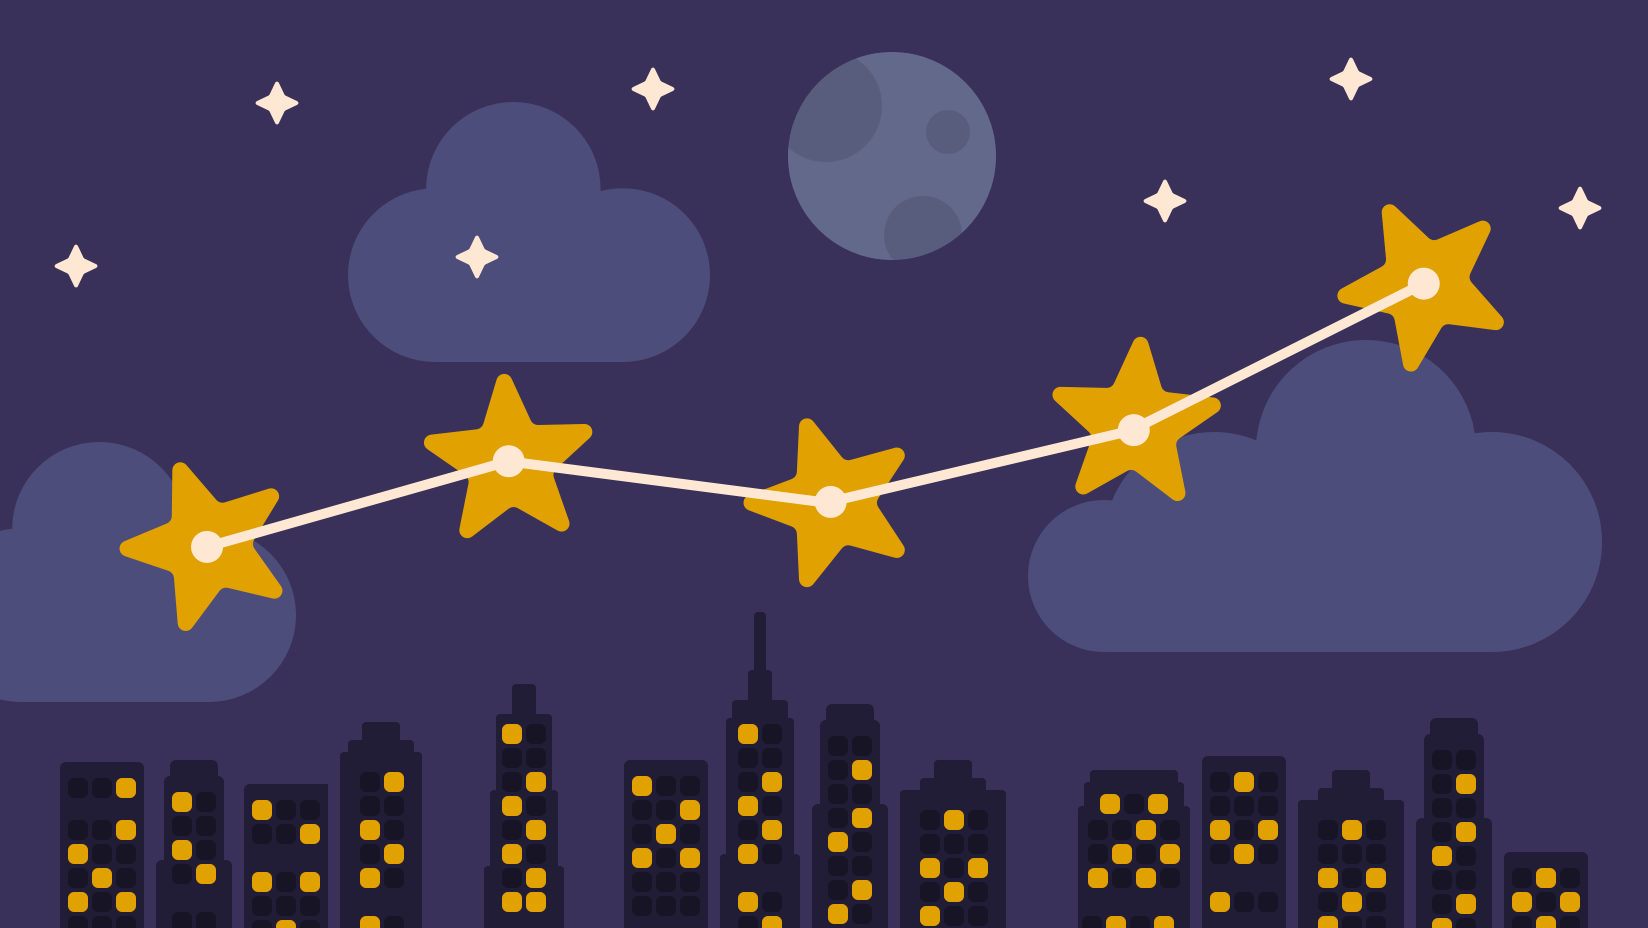 How To Get More Ratings for Your App or Game Overnight